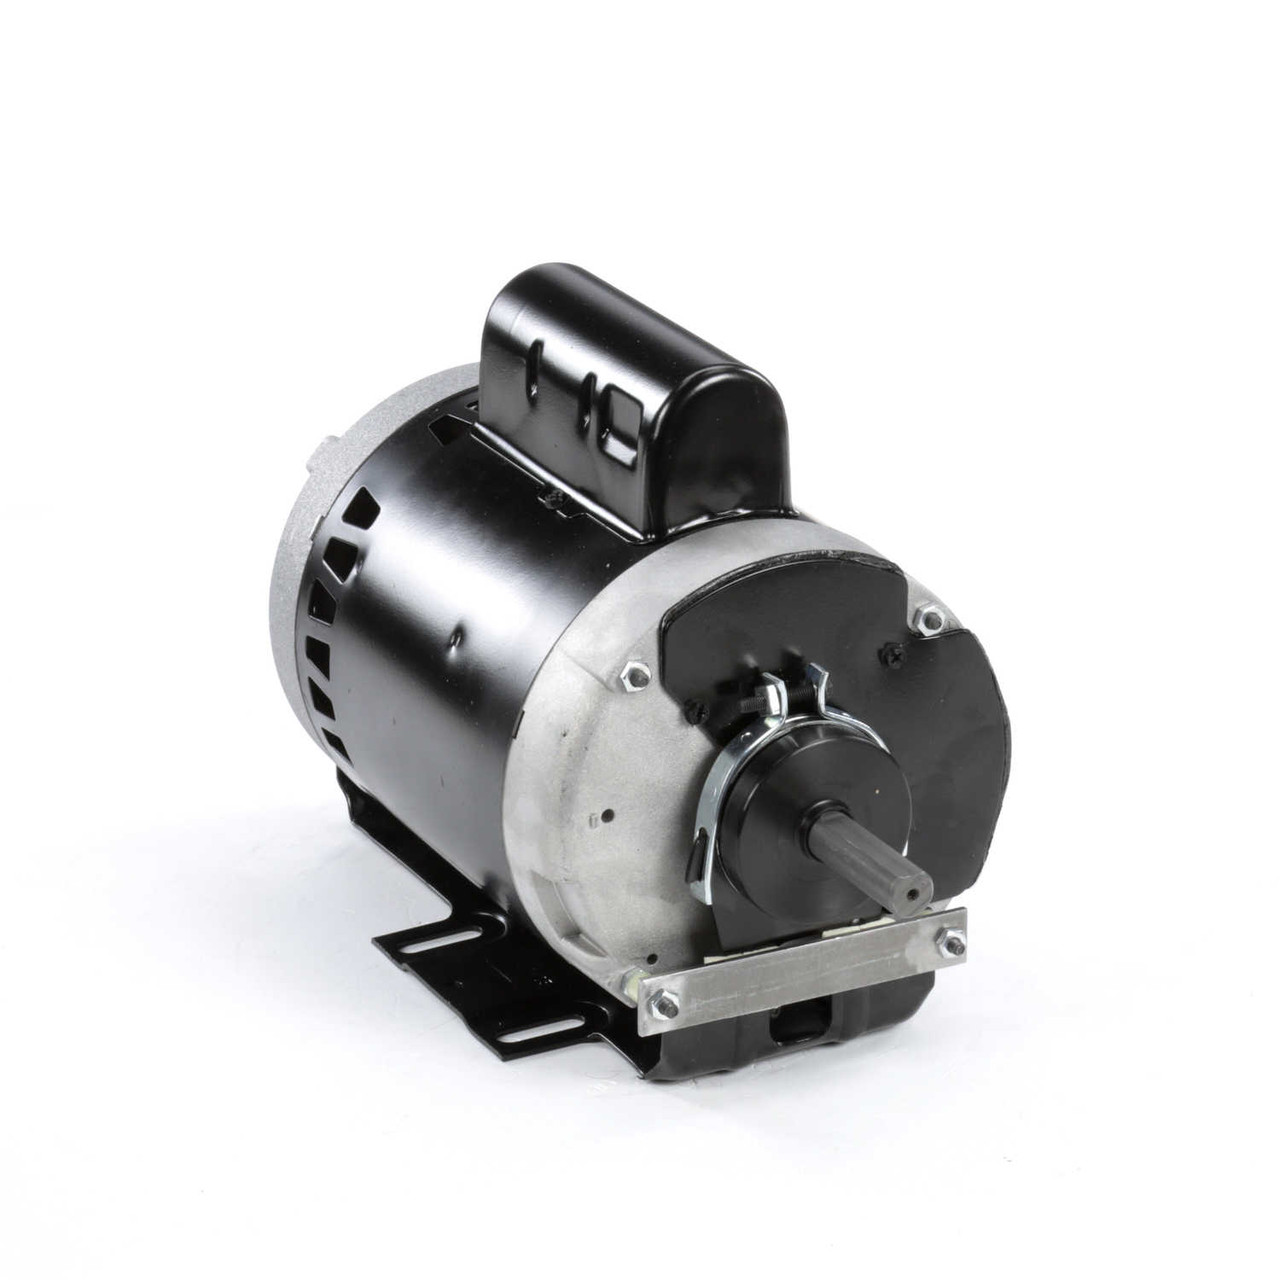 hight resolution of kramer trenton condenser fan motor 3 4 hp 1075 rpm 208 230 460v century c662